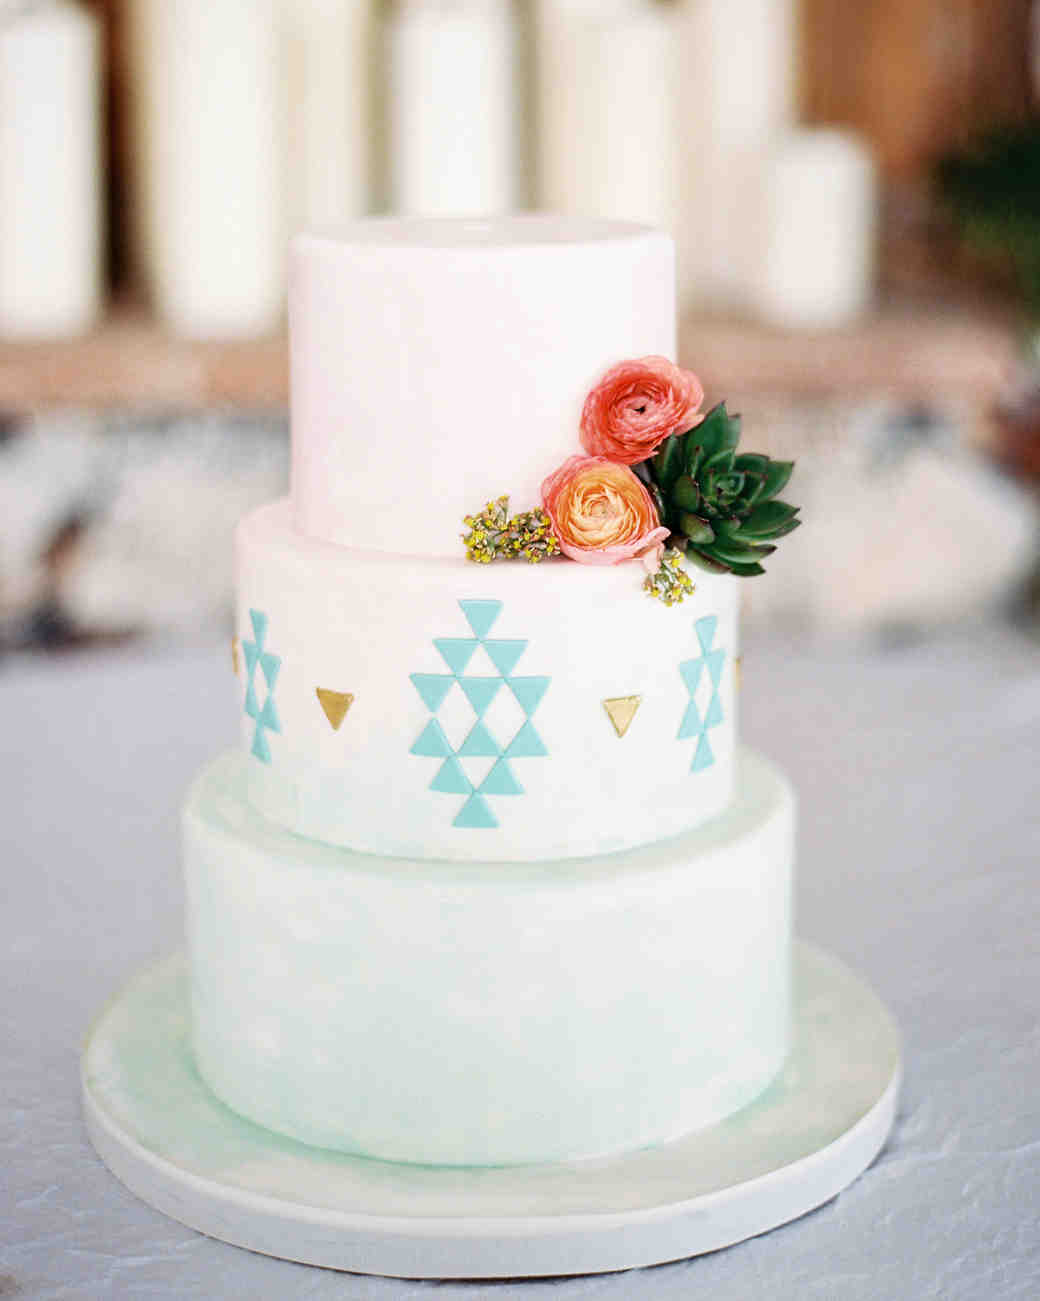 White Wedding Cake with Triangle Details